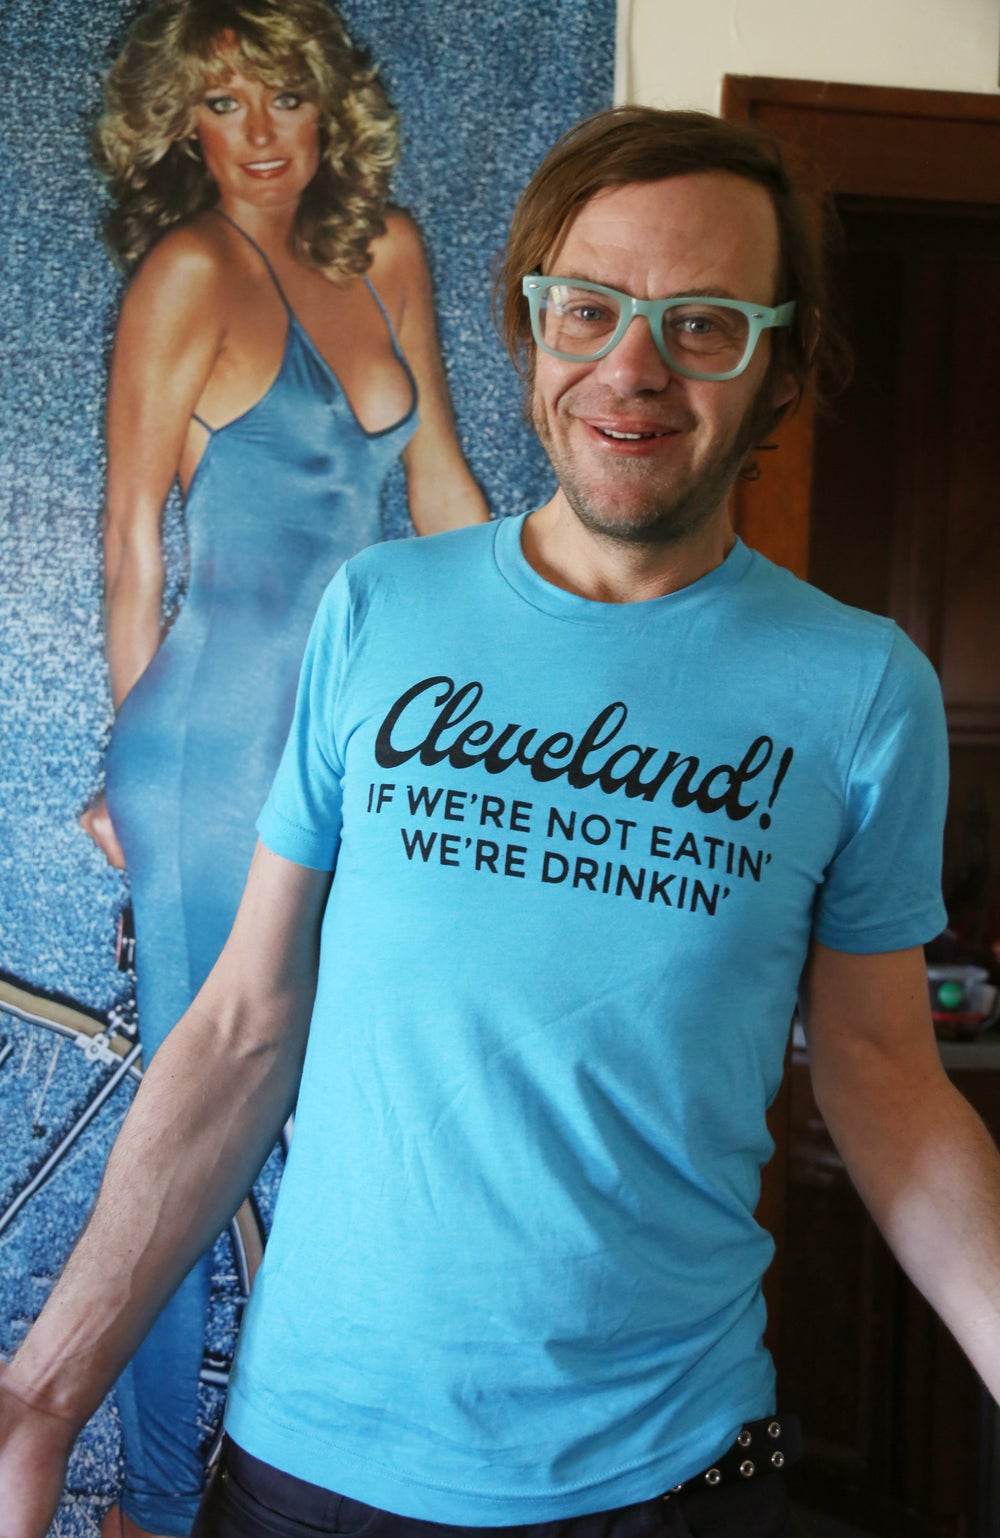 Cleveland! If We're Not Eatin', We're Drinkin'